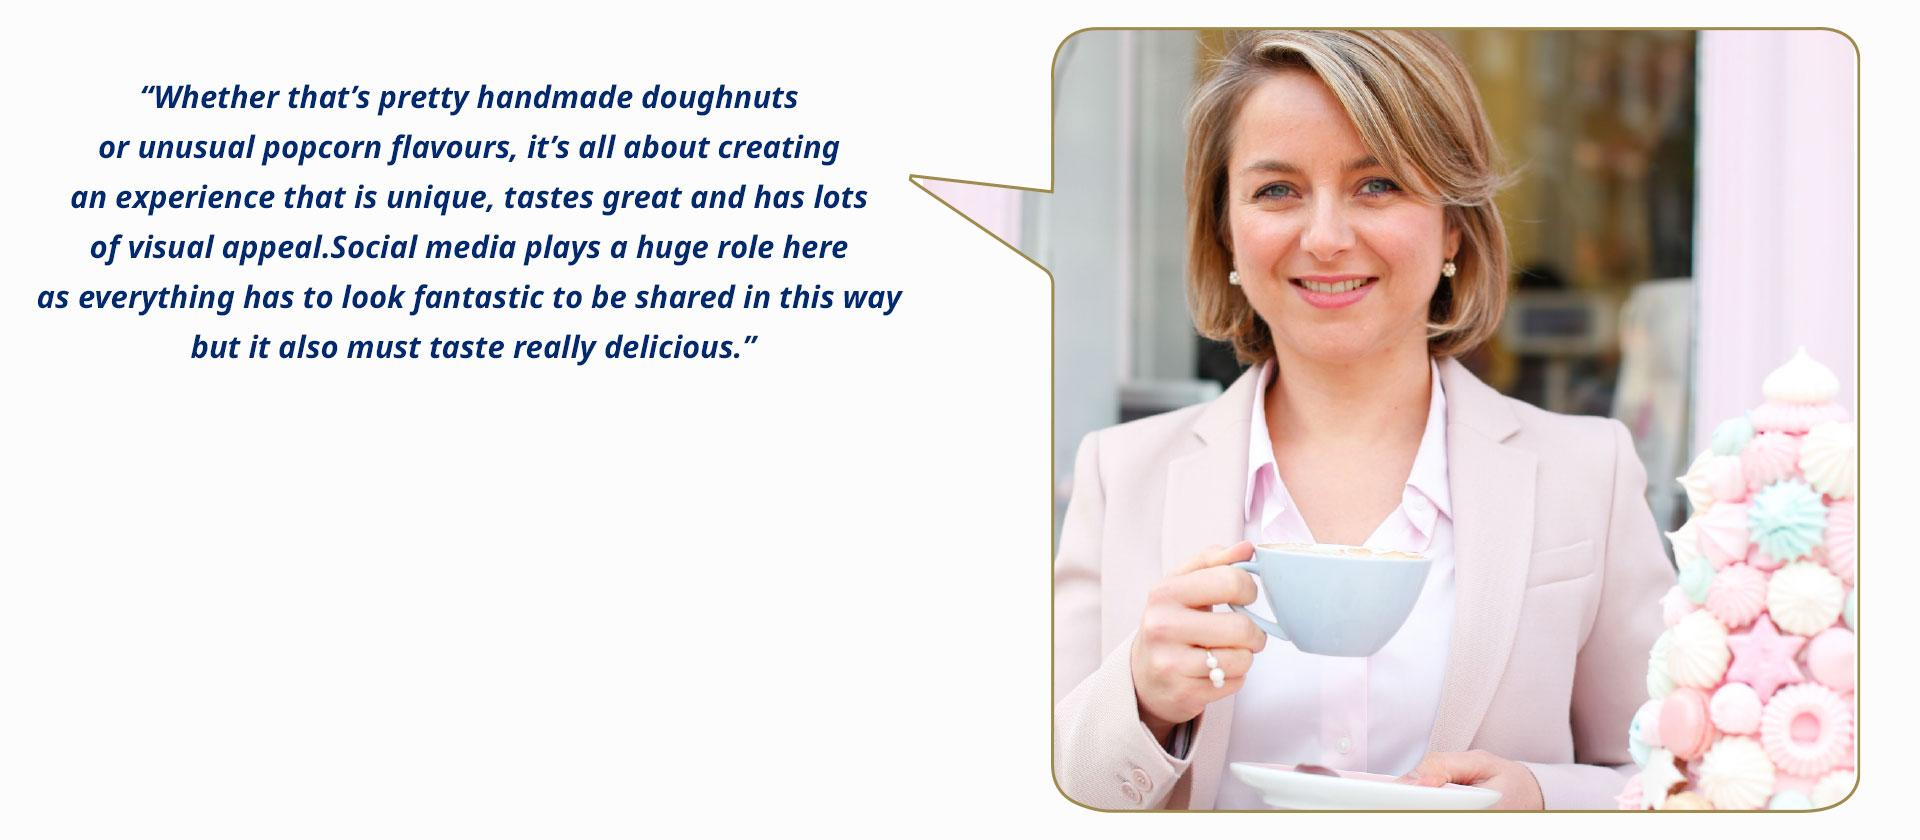 Peggy Porschen (UK), founder and creative director at Peggy Porschen Cakes